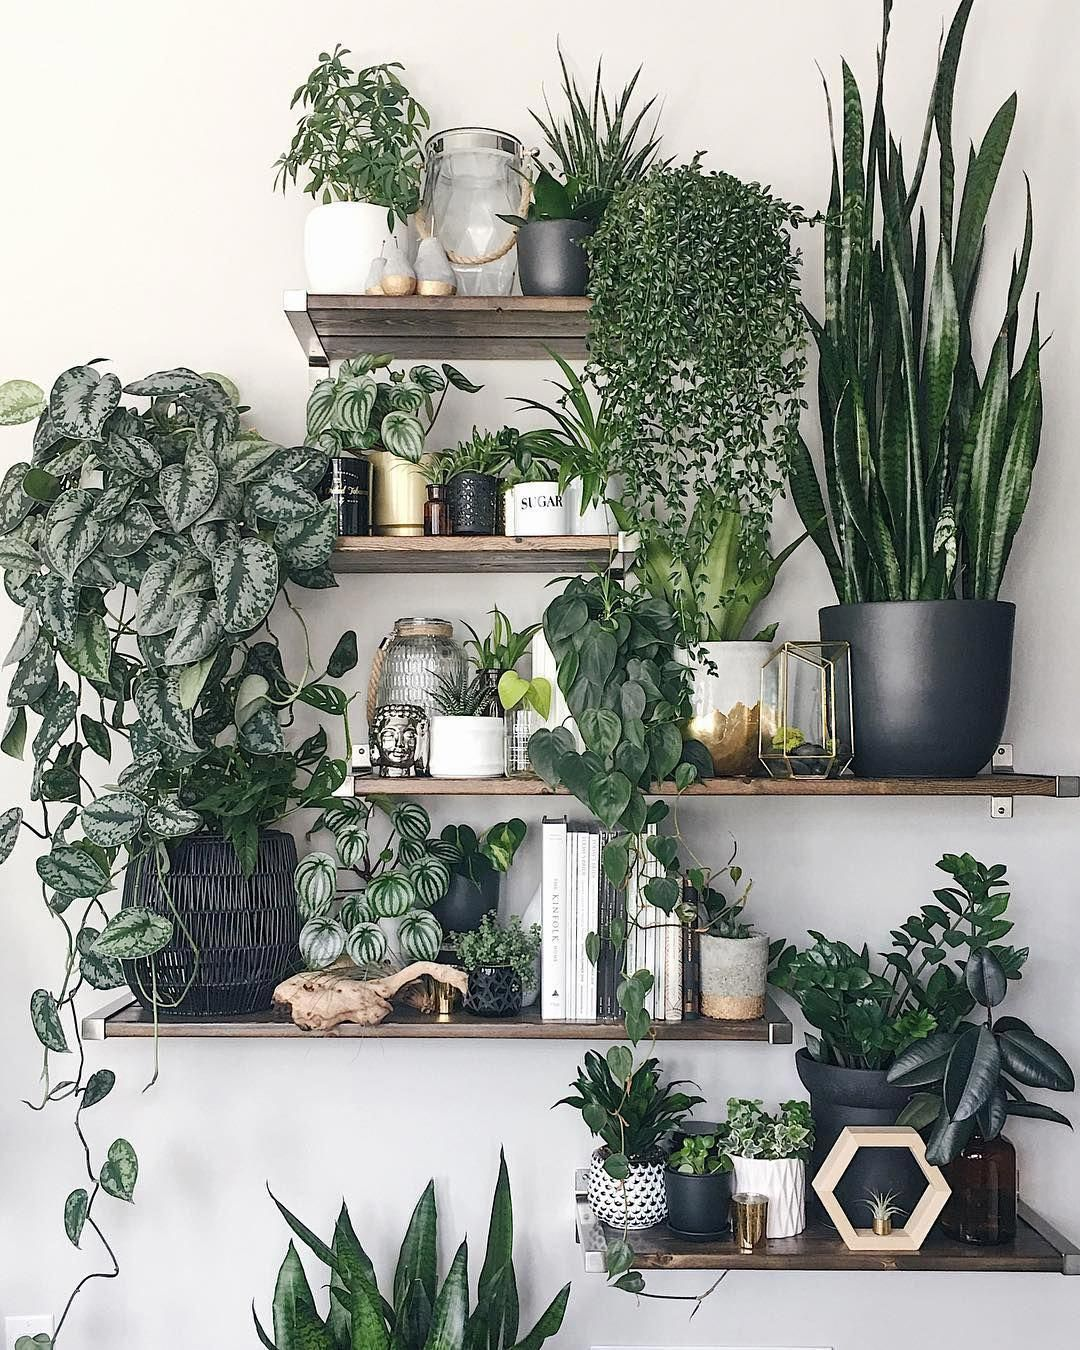 Shelving and display ideas spotted on Instagram offering